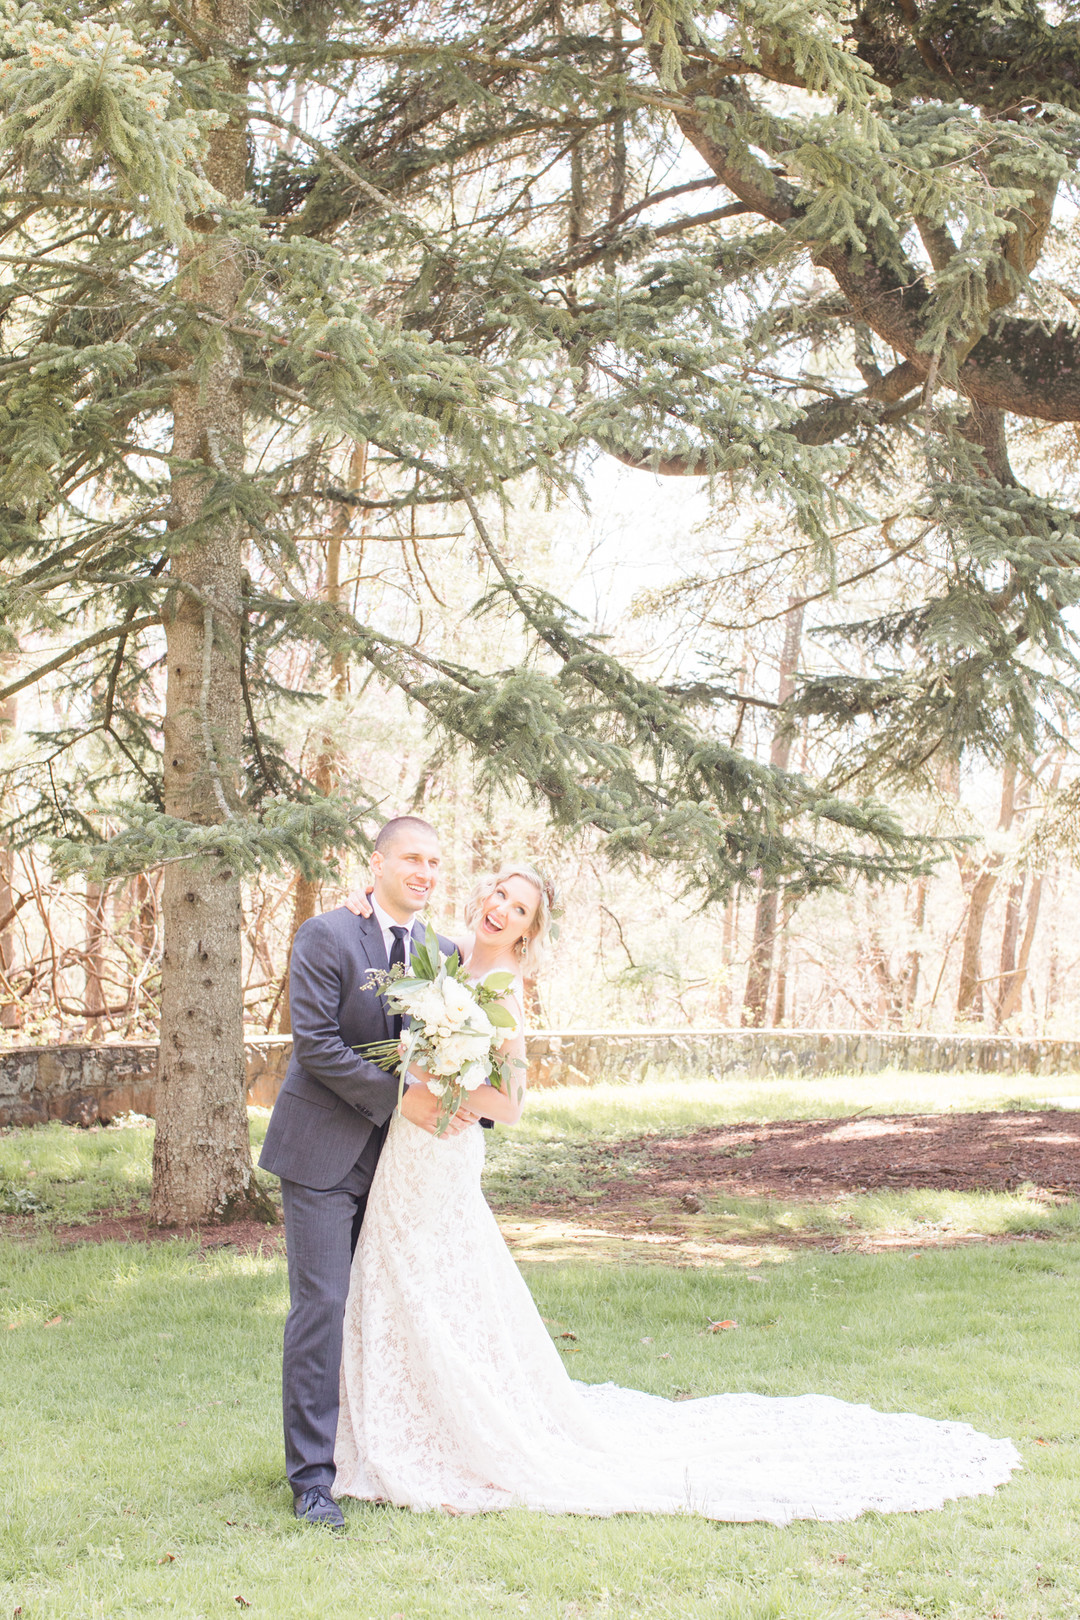 Bride and groom outdoor photo in front of large tree